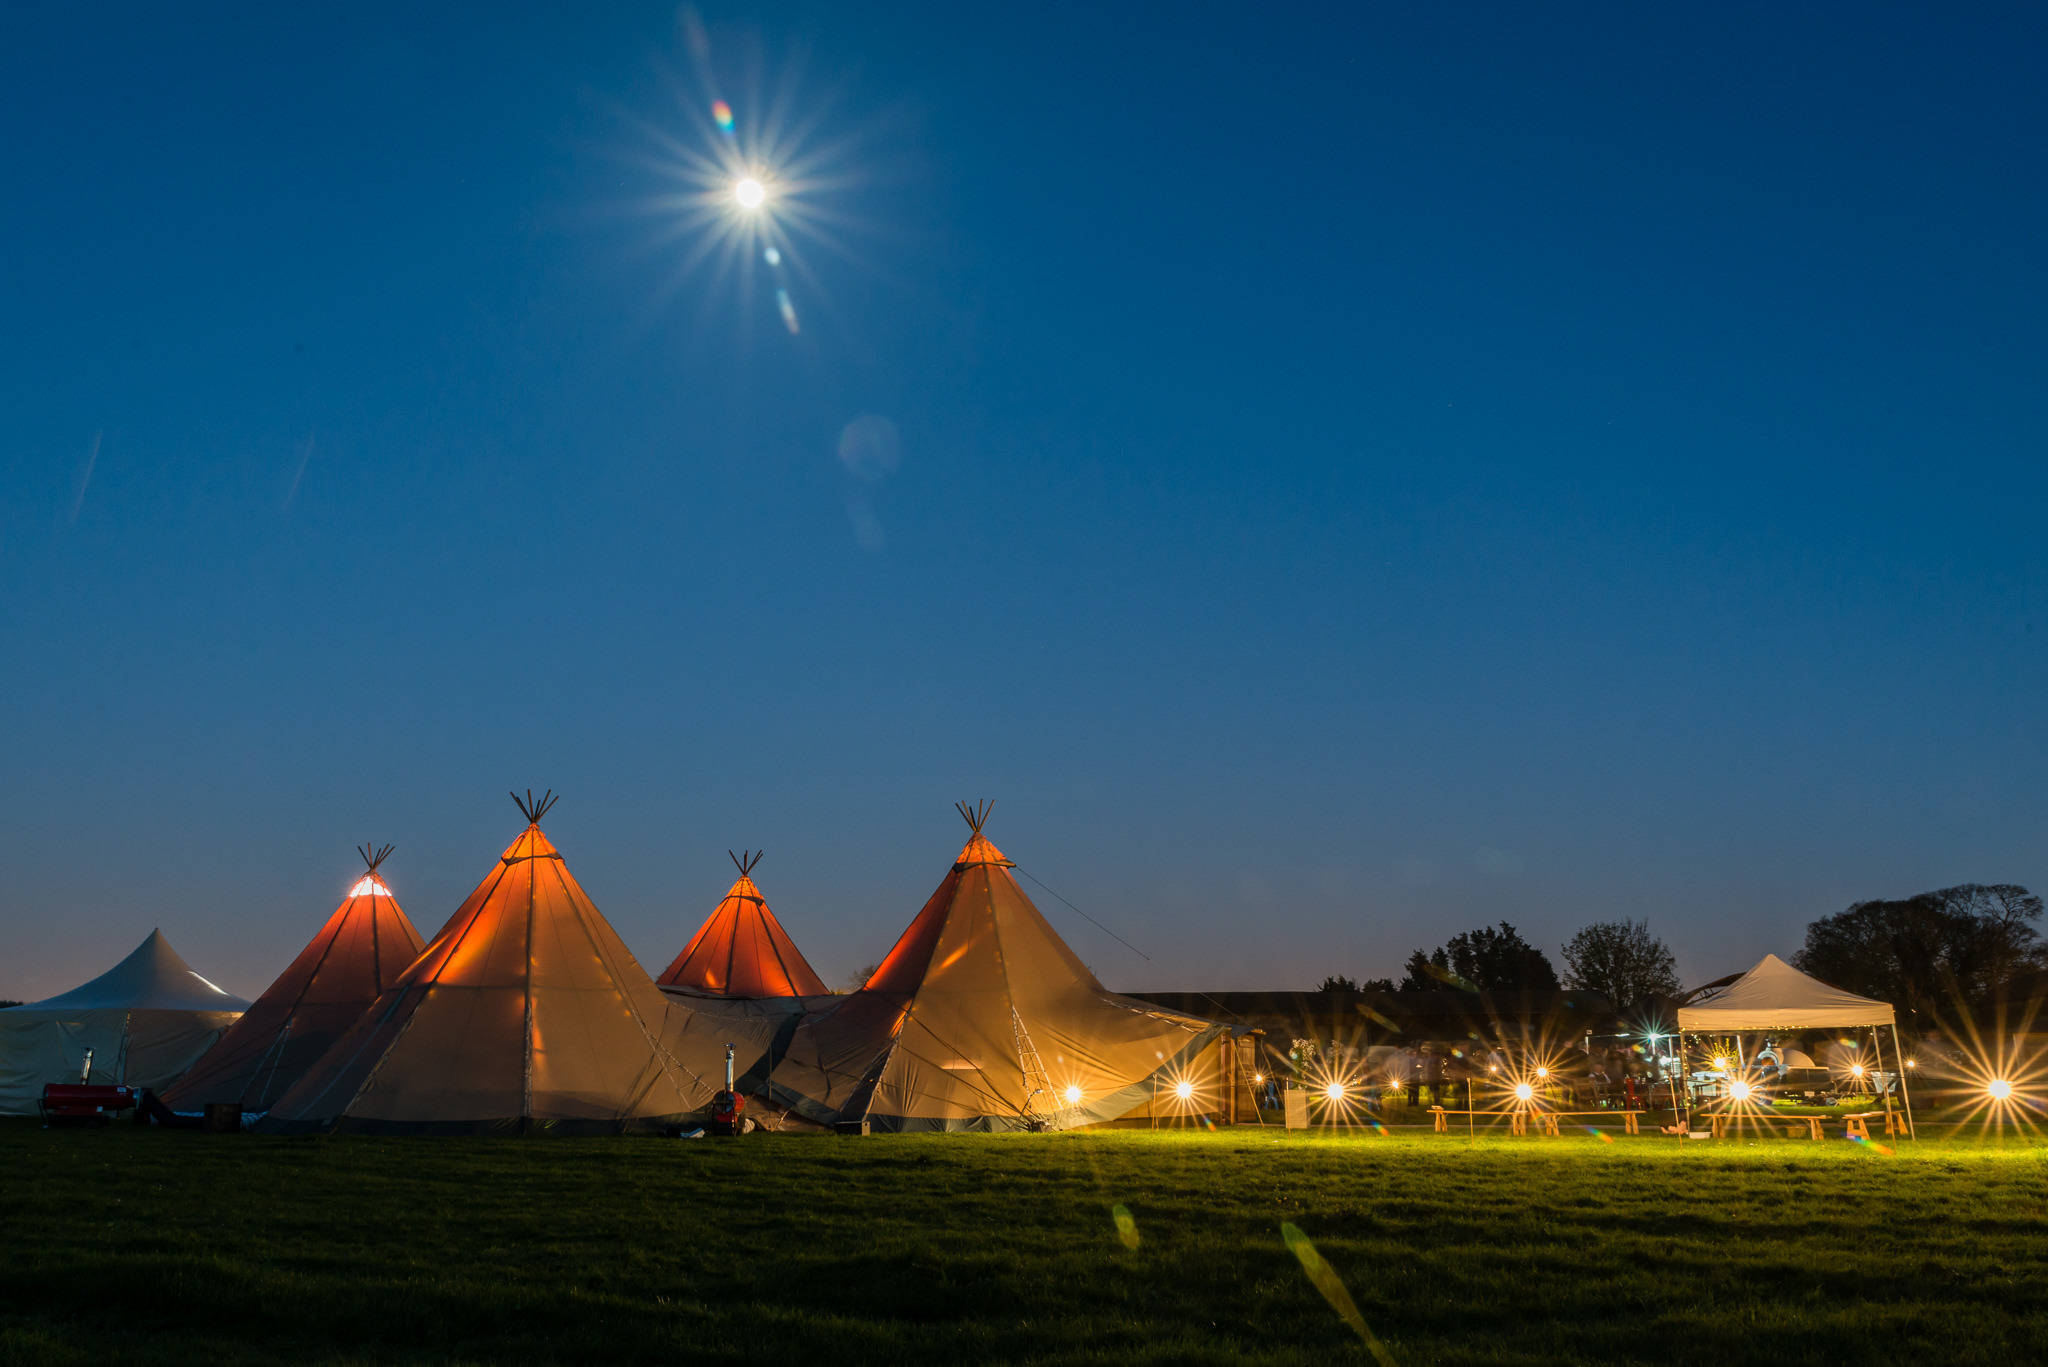 The Hertfordshire tipi wedding reception at night